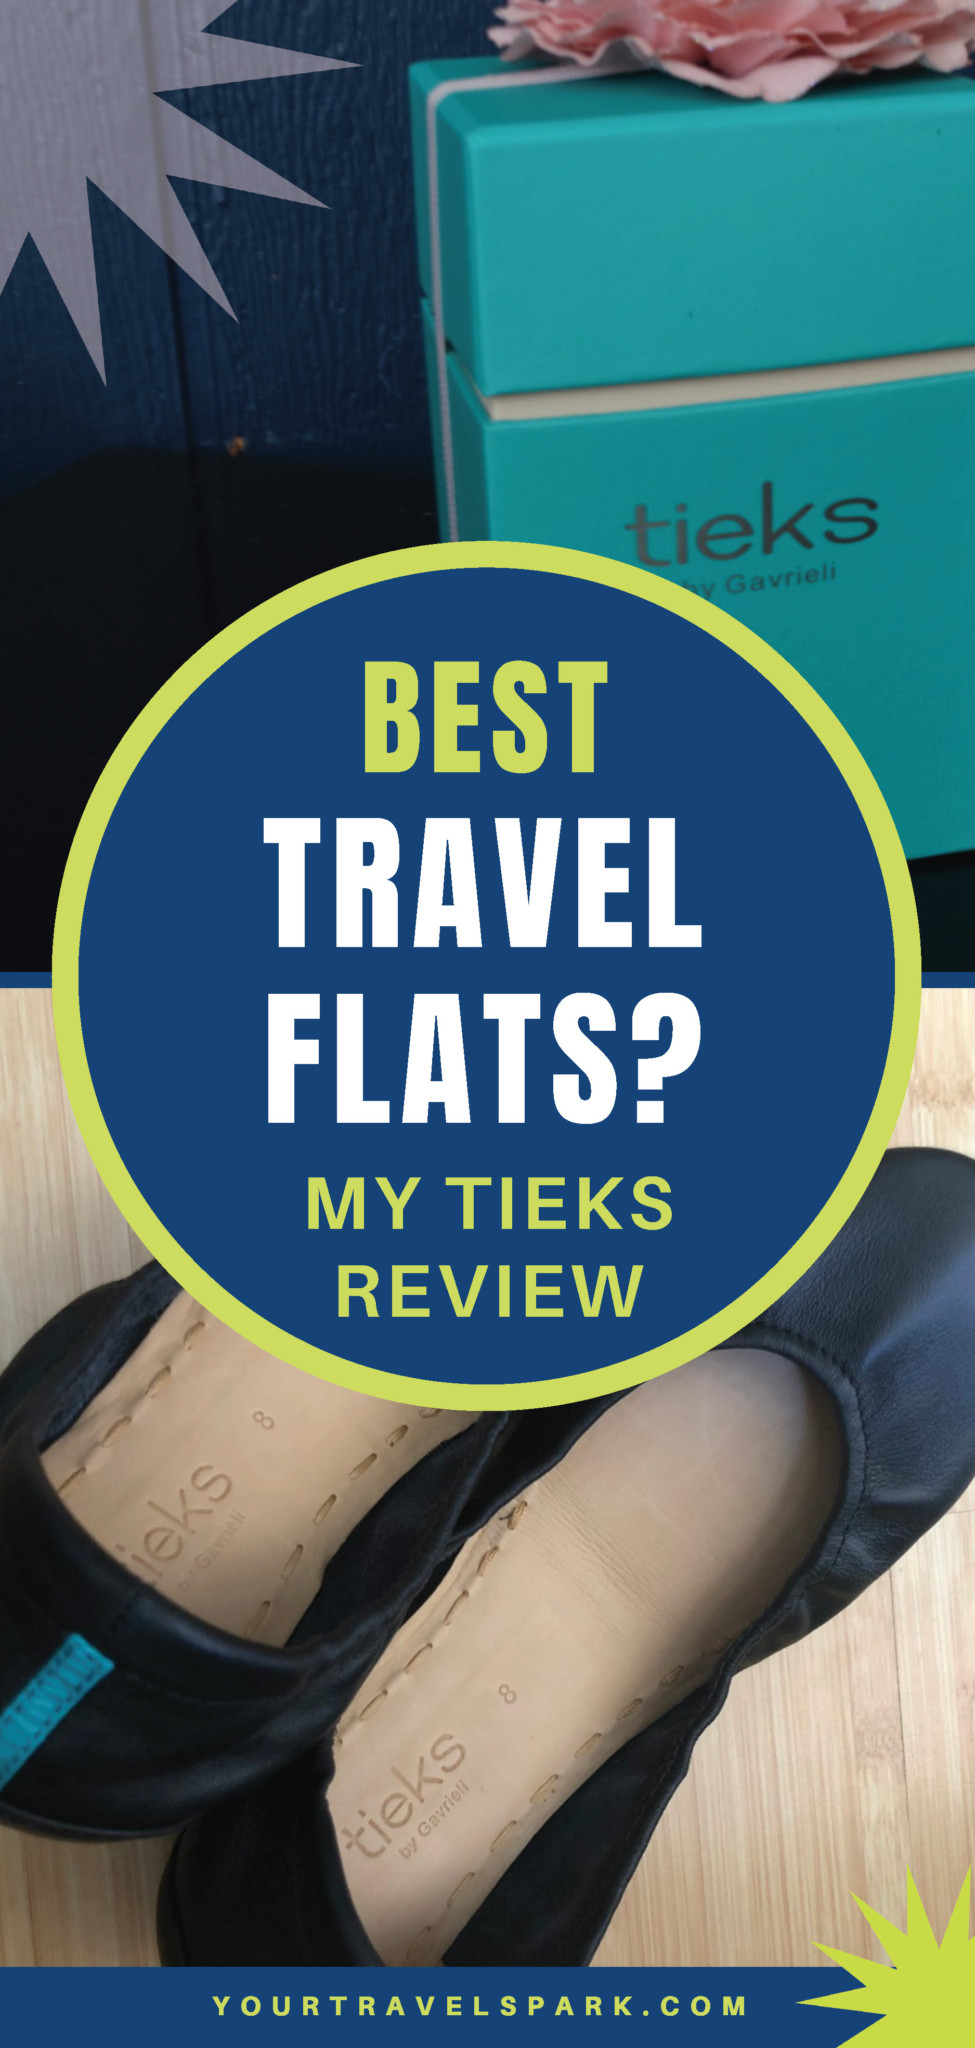 Are you looking for the best ballet flats for travel? Here is my Tieks review. #balletflats #travelflats #travelballetflats #flats #tieks #tieksflats #tieksballetflats #review #tieksreview #mytieks